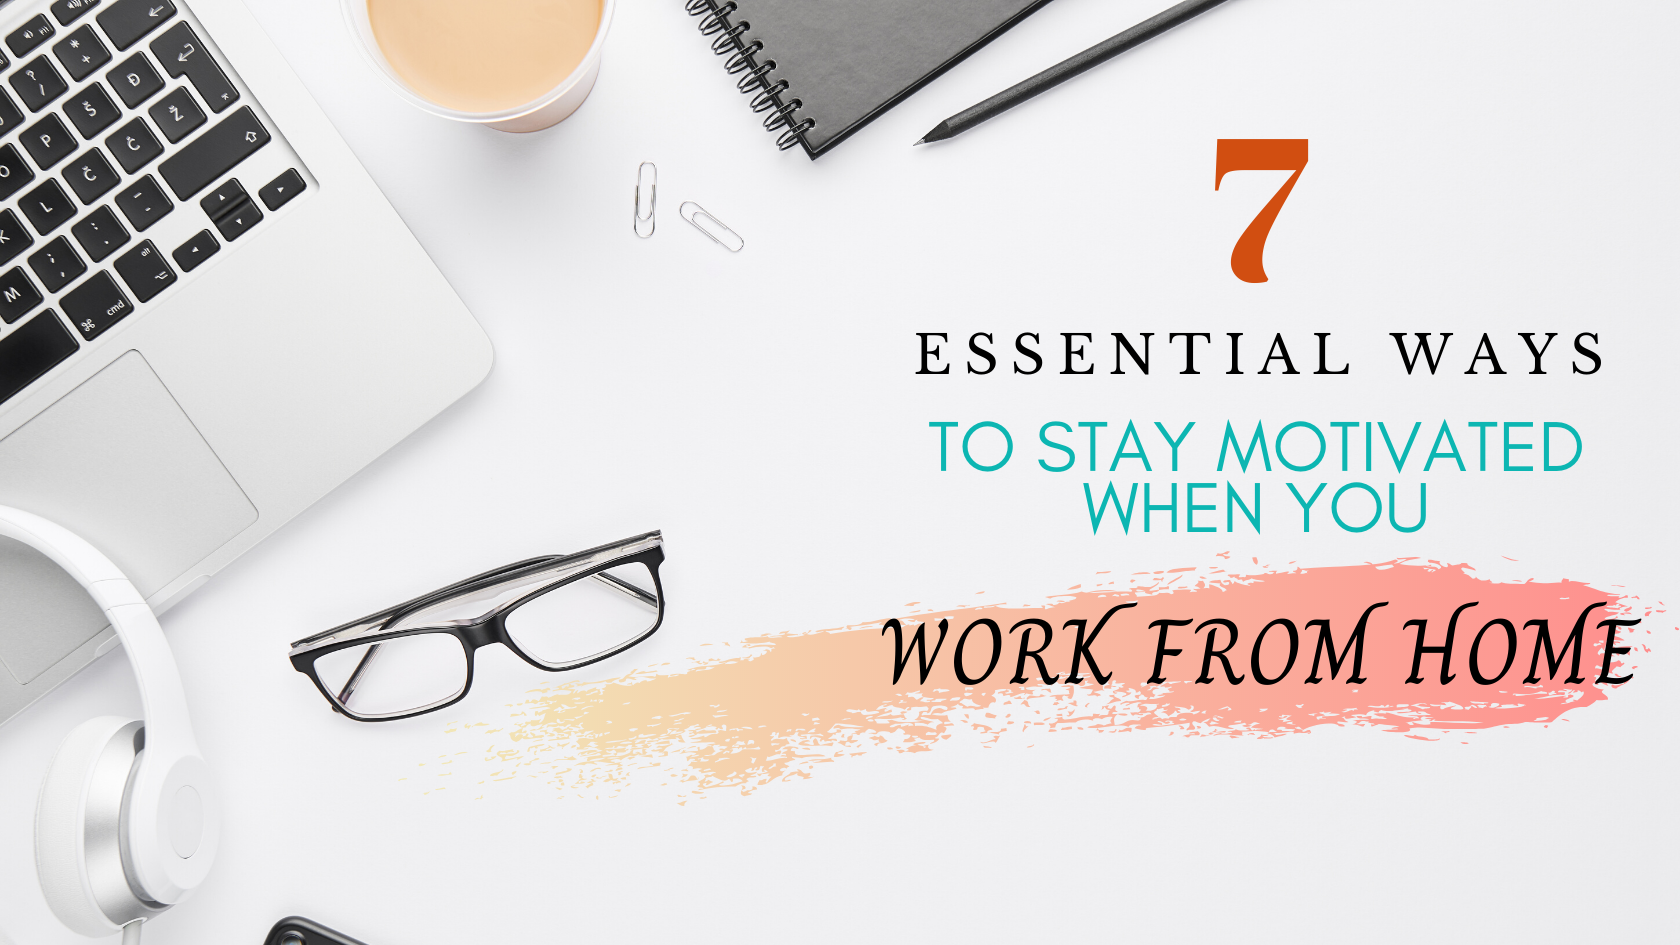 7 Essential Ways to Stay Motivated When You Work From Home